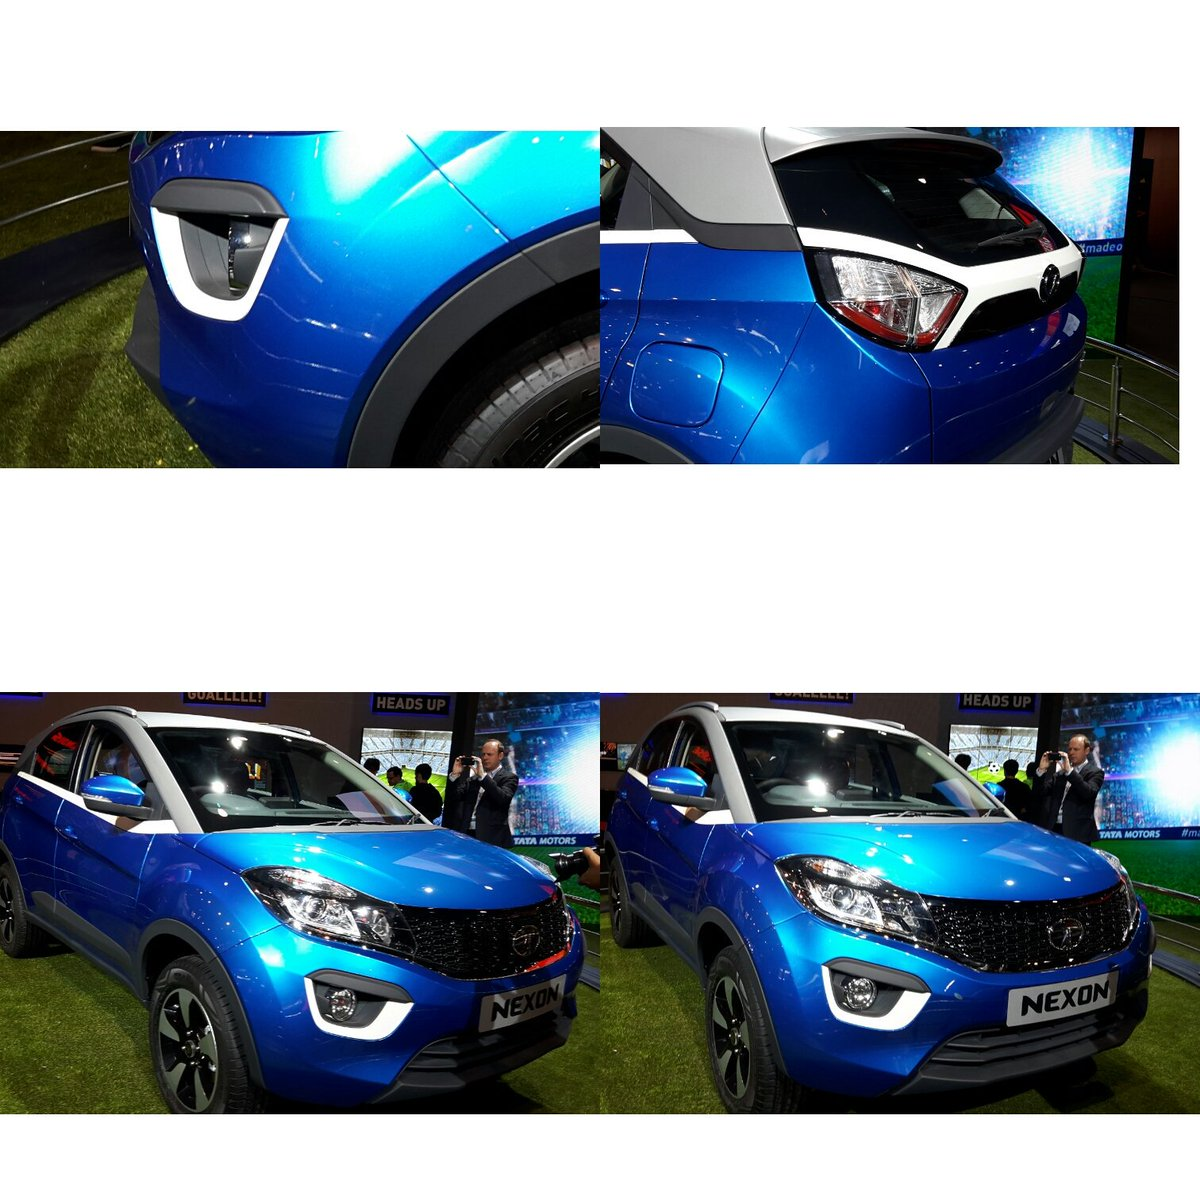 #Tata Nexon star car of #autoexpo2016 for me @BosePratap . Still cant believe its production version ! https://t.co/sfSuPVlZVN